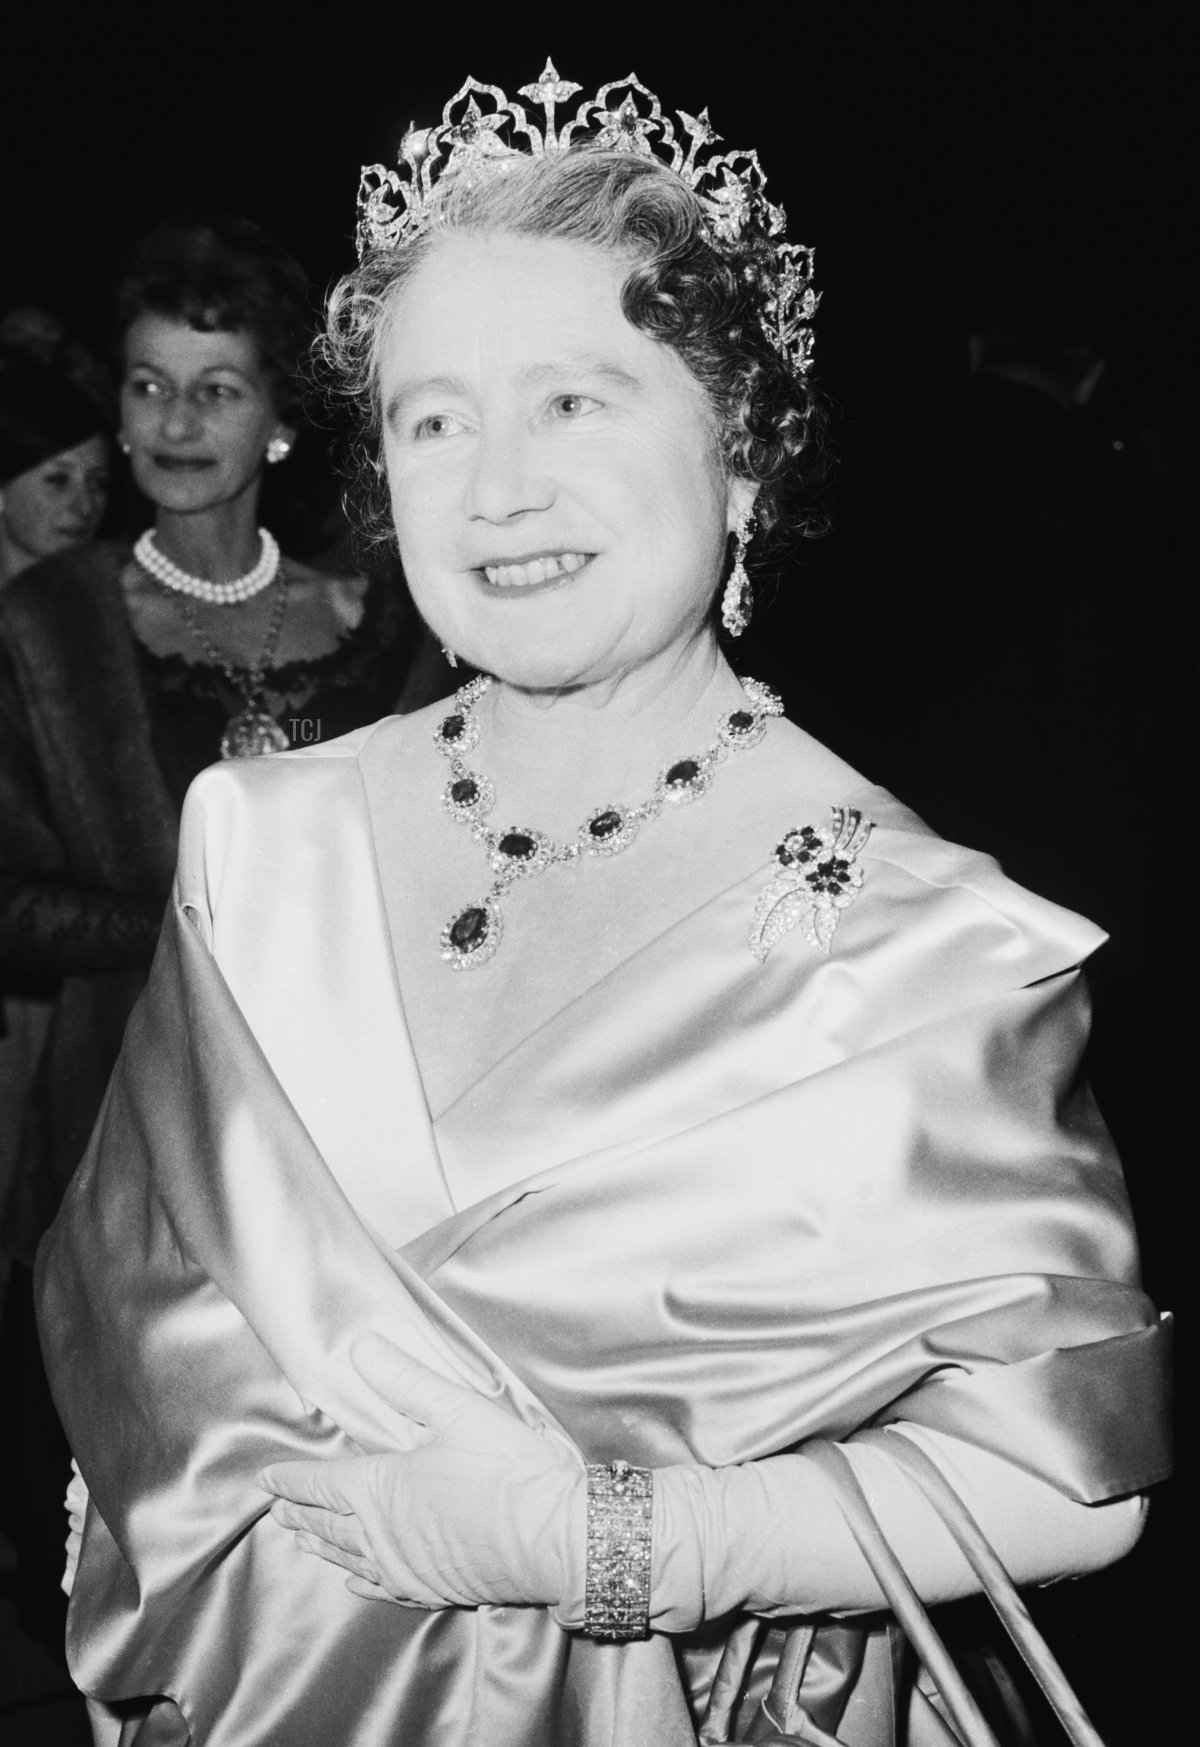 The Queen Mother (1900 - 2002) attends a performance at RADA (the Royal Academy of Dramatic Art), to celebrate the drama school's Diamond Jubilee (60th anniversary), London, UK, November 1964